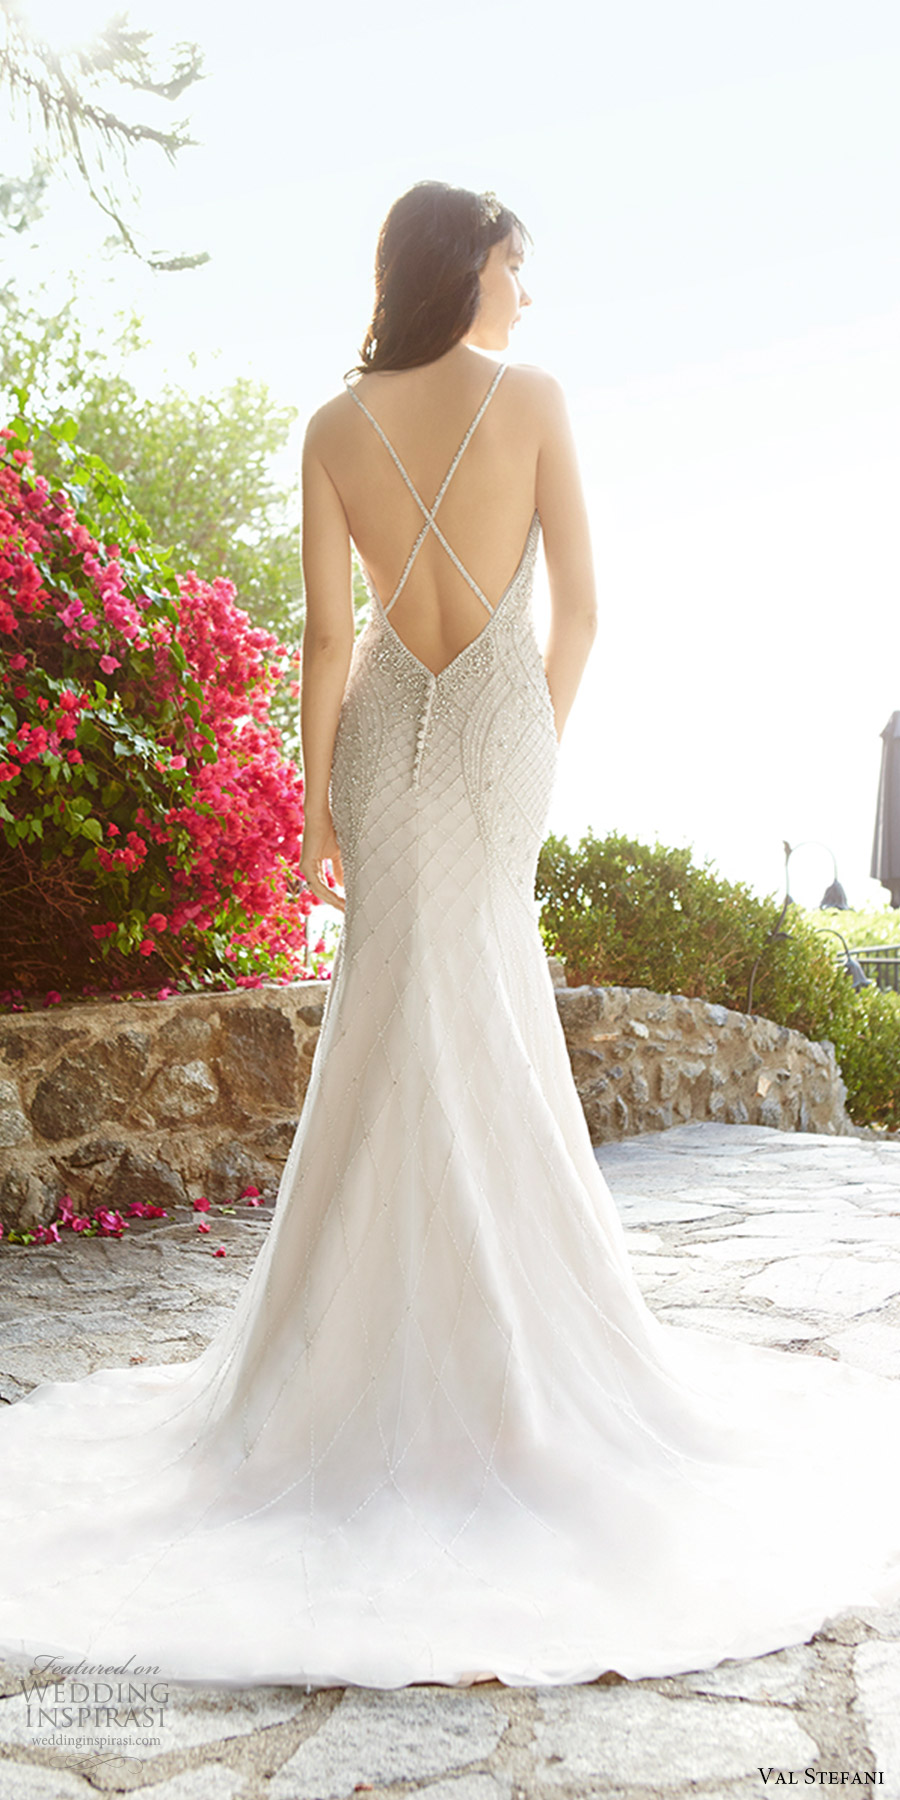 val stefani fall 2017 bridal sleeveless thin straps sweetheart beaded bodice fit flare mermaid wedding dress (d8137) bv open back cross straps train glam elegant